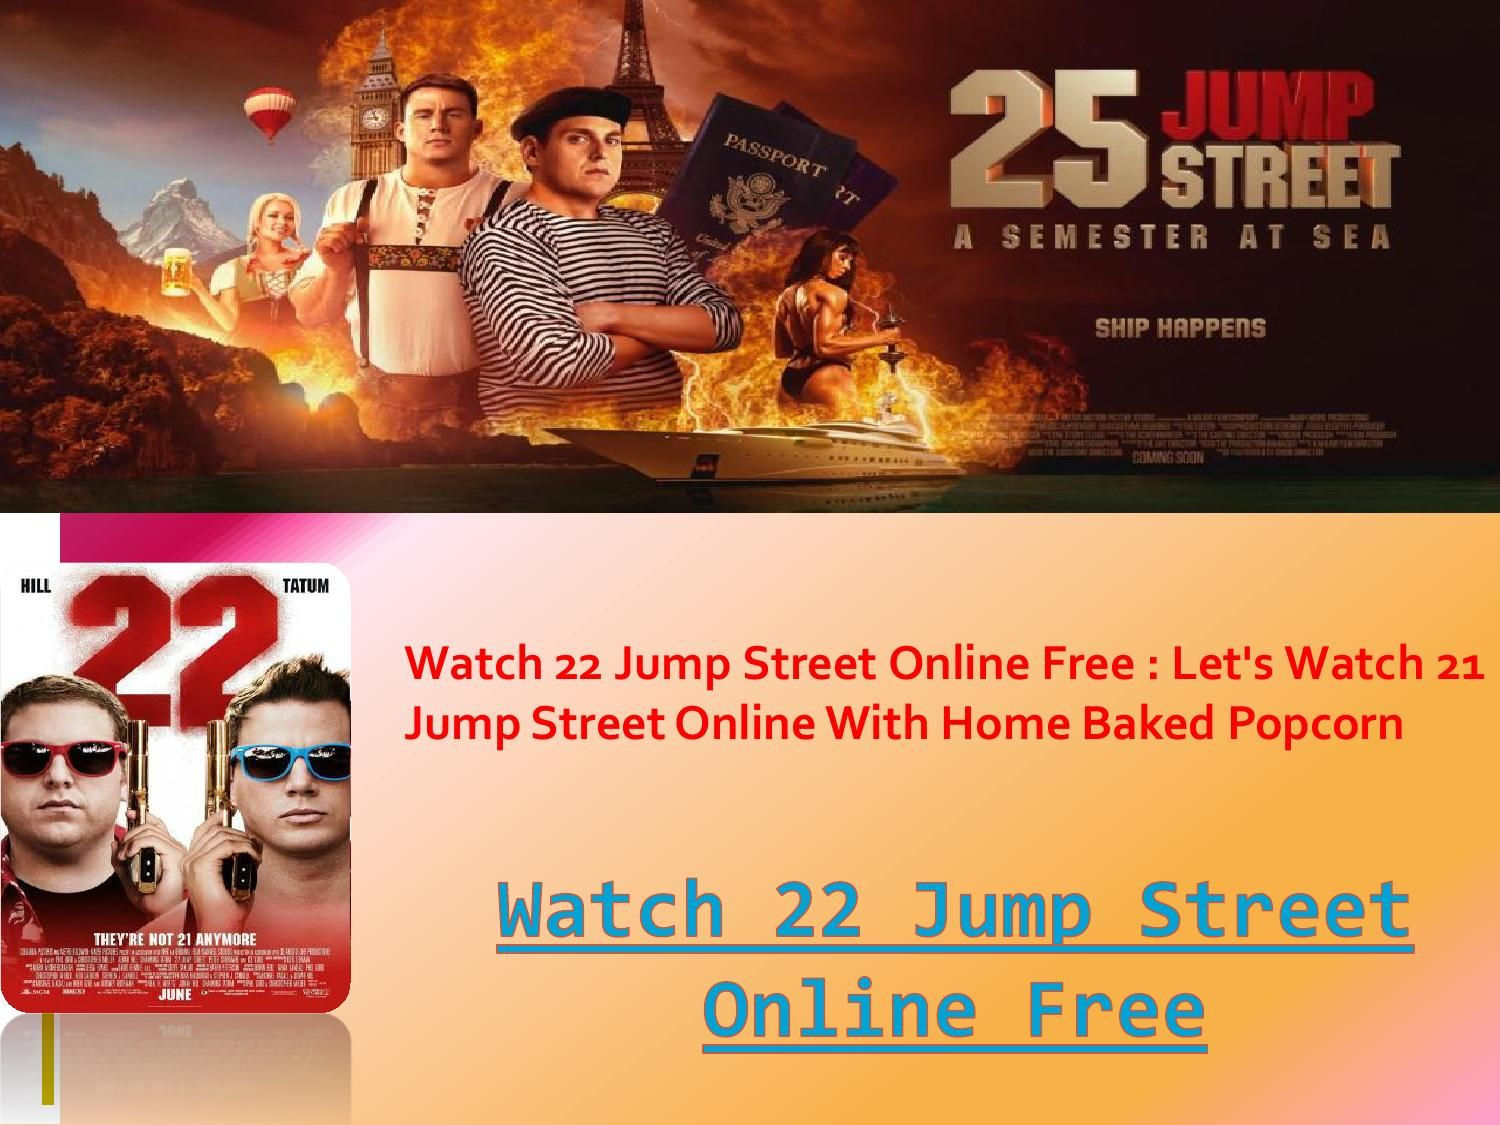 22 jump street free online no sign up